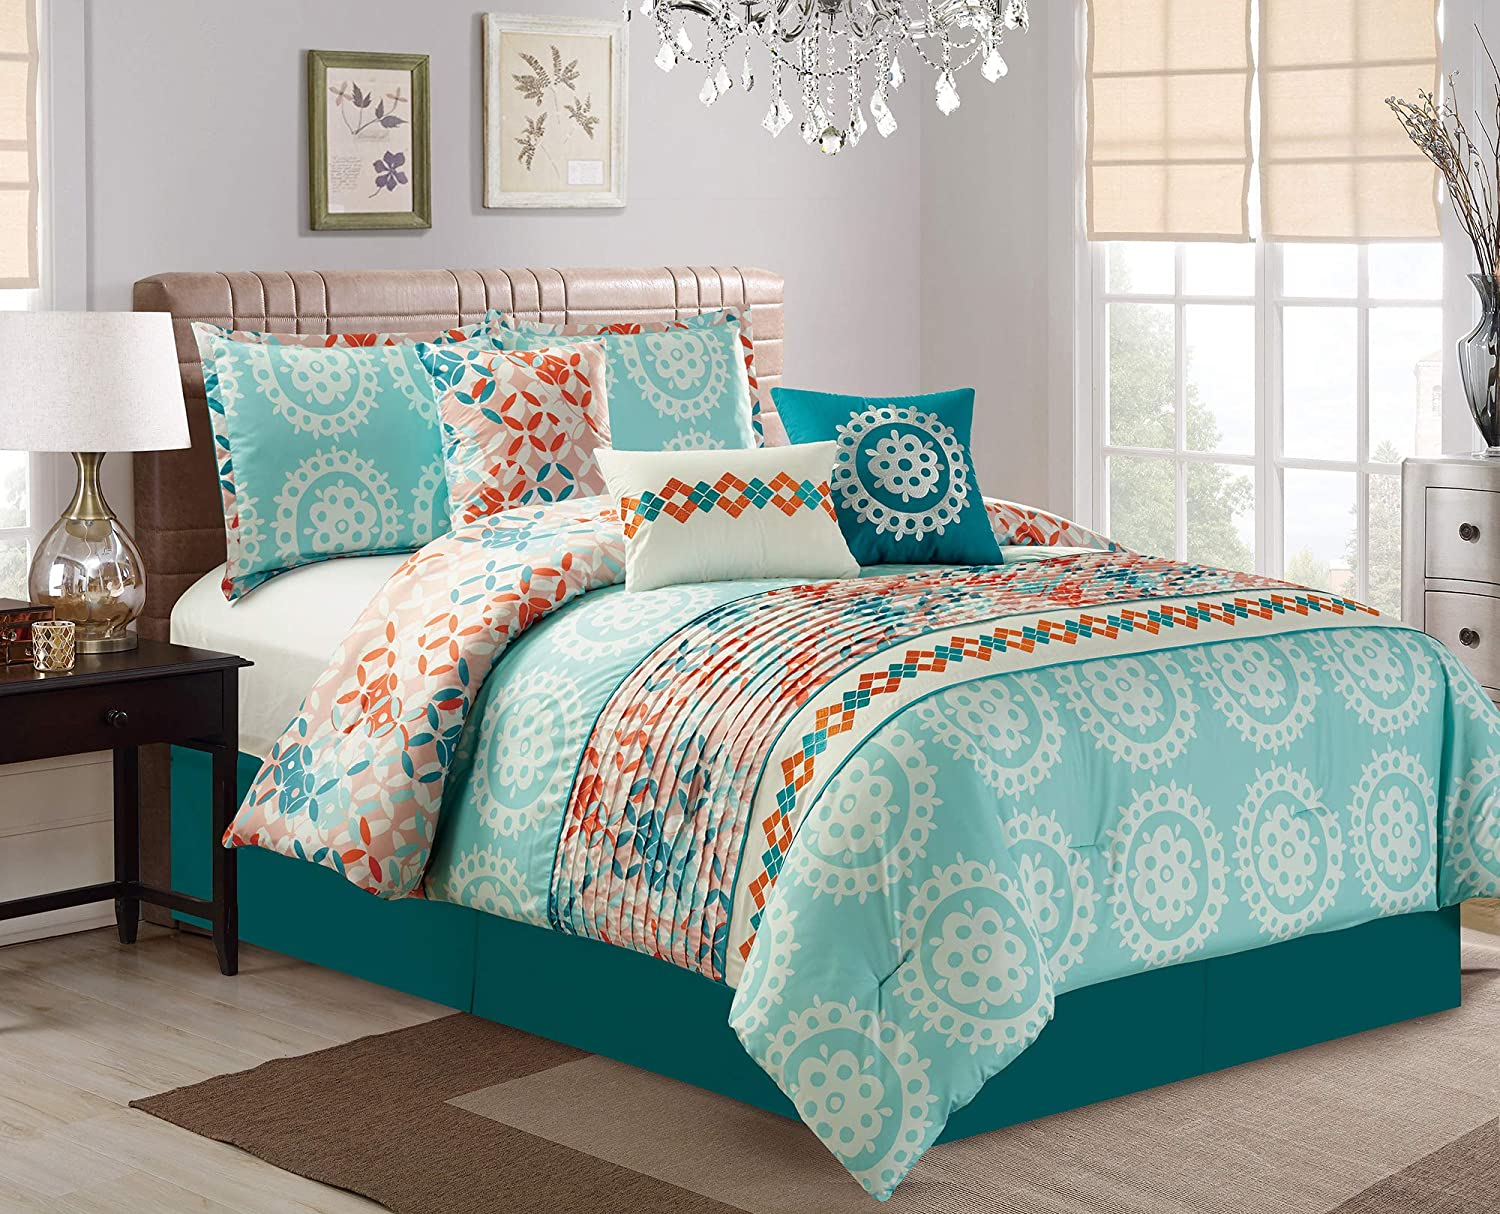 Modern 7 Piece Quilted Bedding Turquoise Blue / Beige / Orange KING Patch  Work Comforter Set with accent pillows